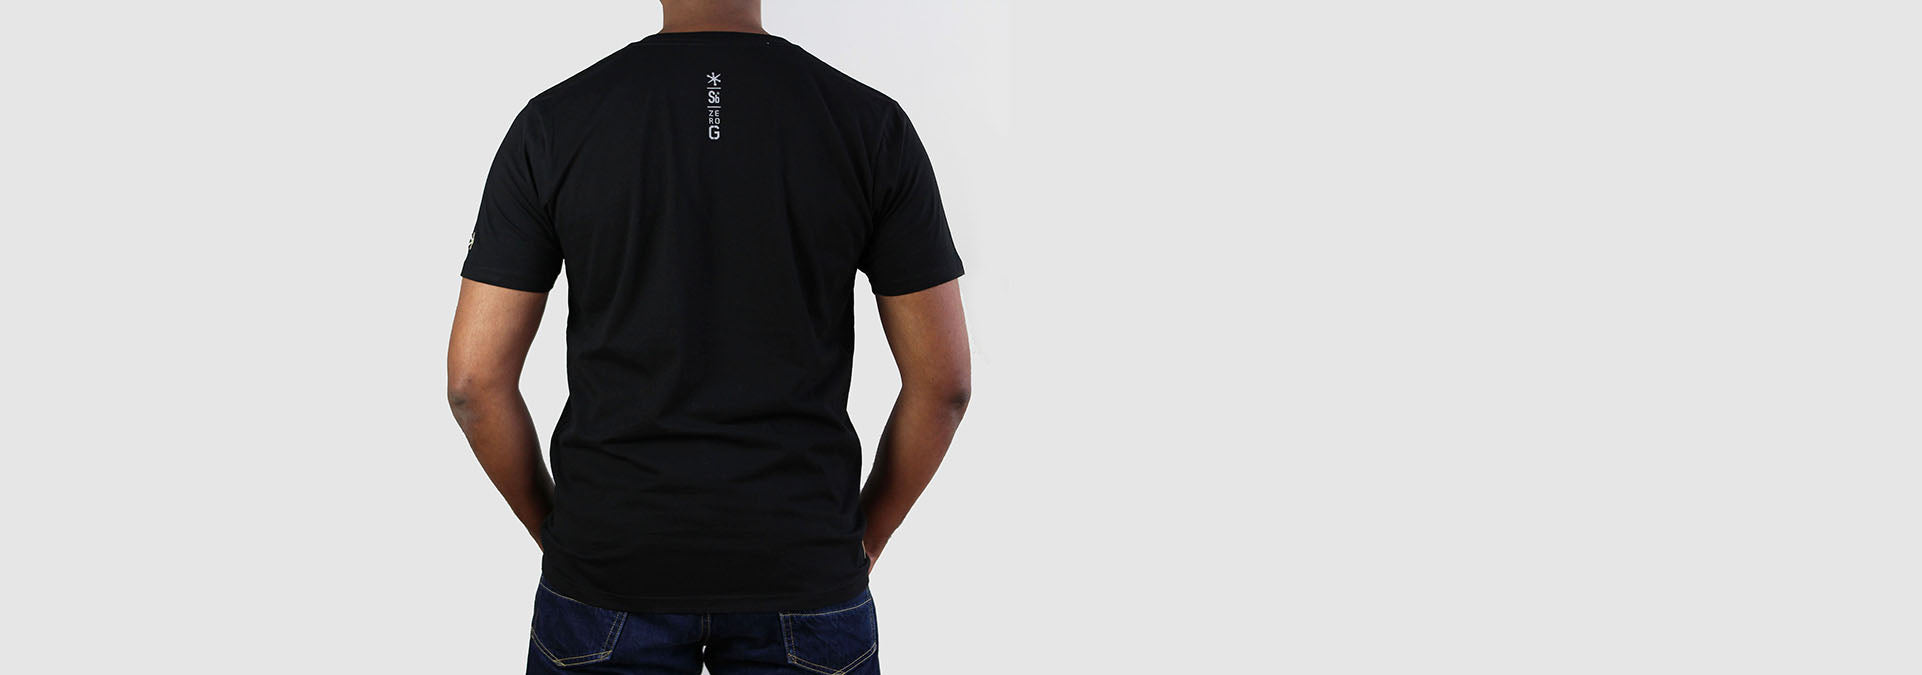 Sputnik 1 Organic Cotton T-Shirt Black